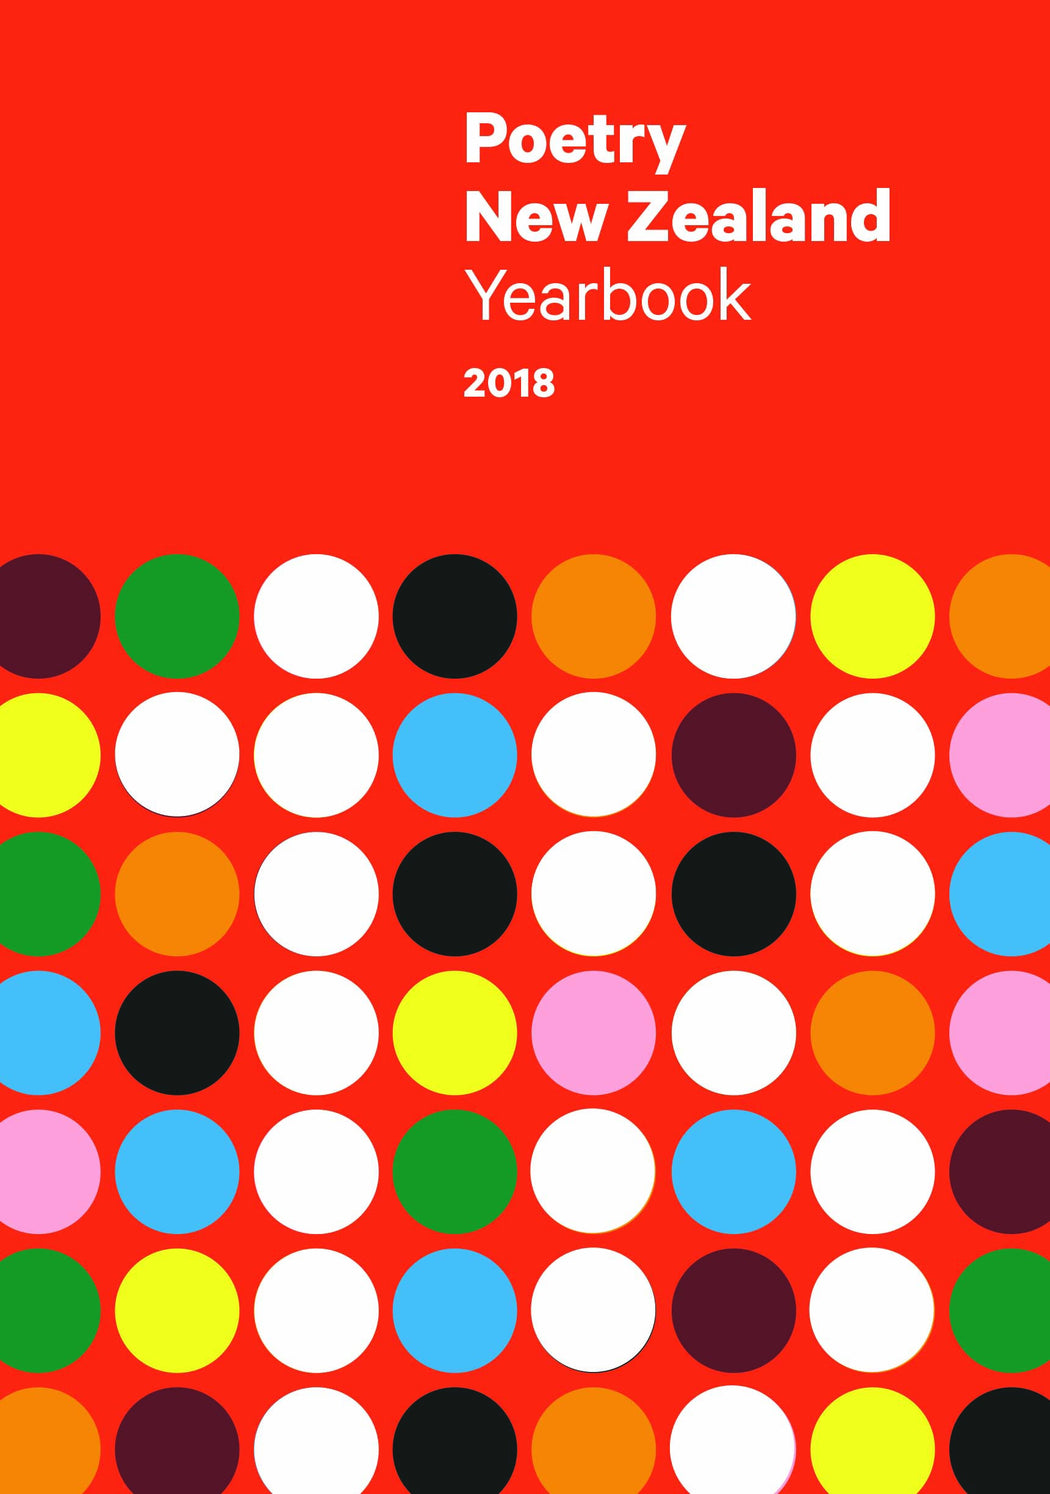 Poetry New Zealand Yearbook 2018 - Strange Goods